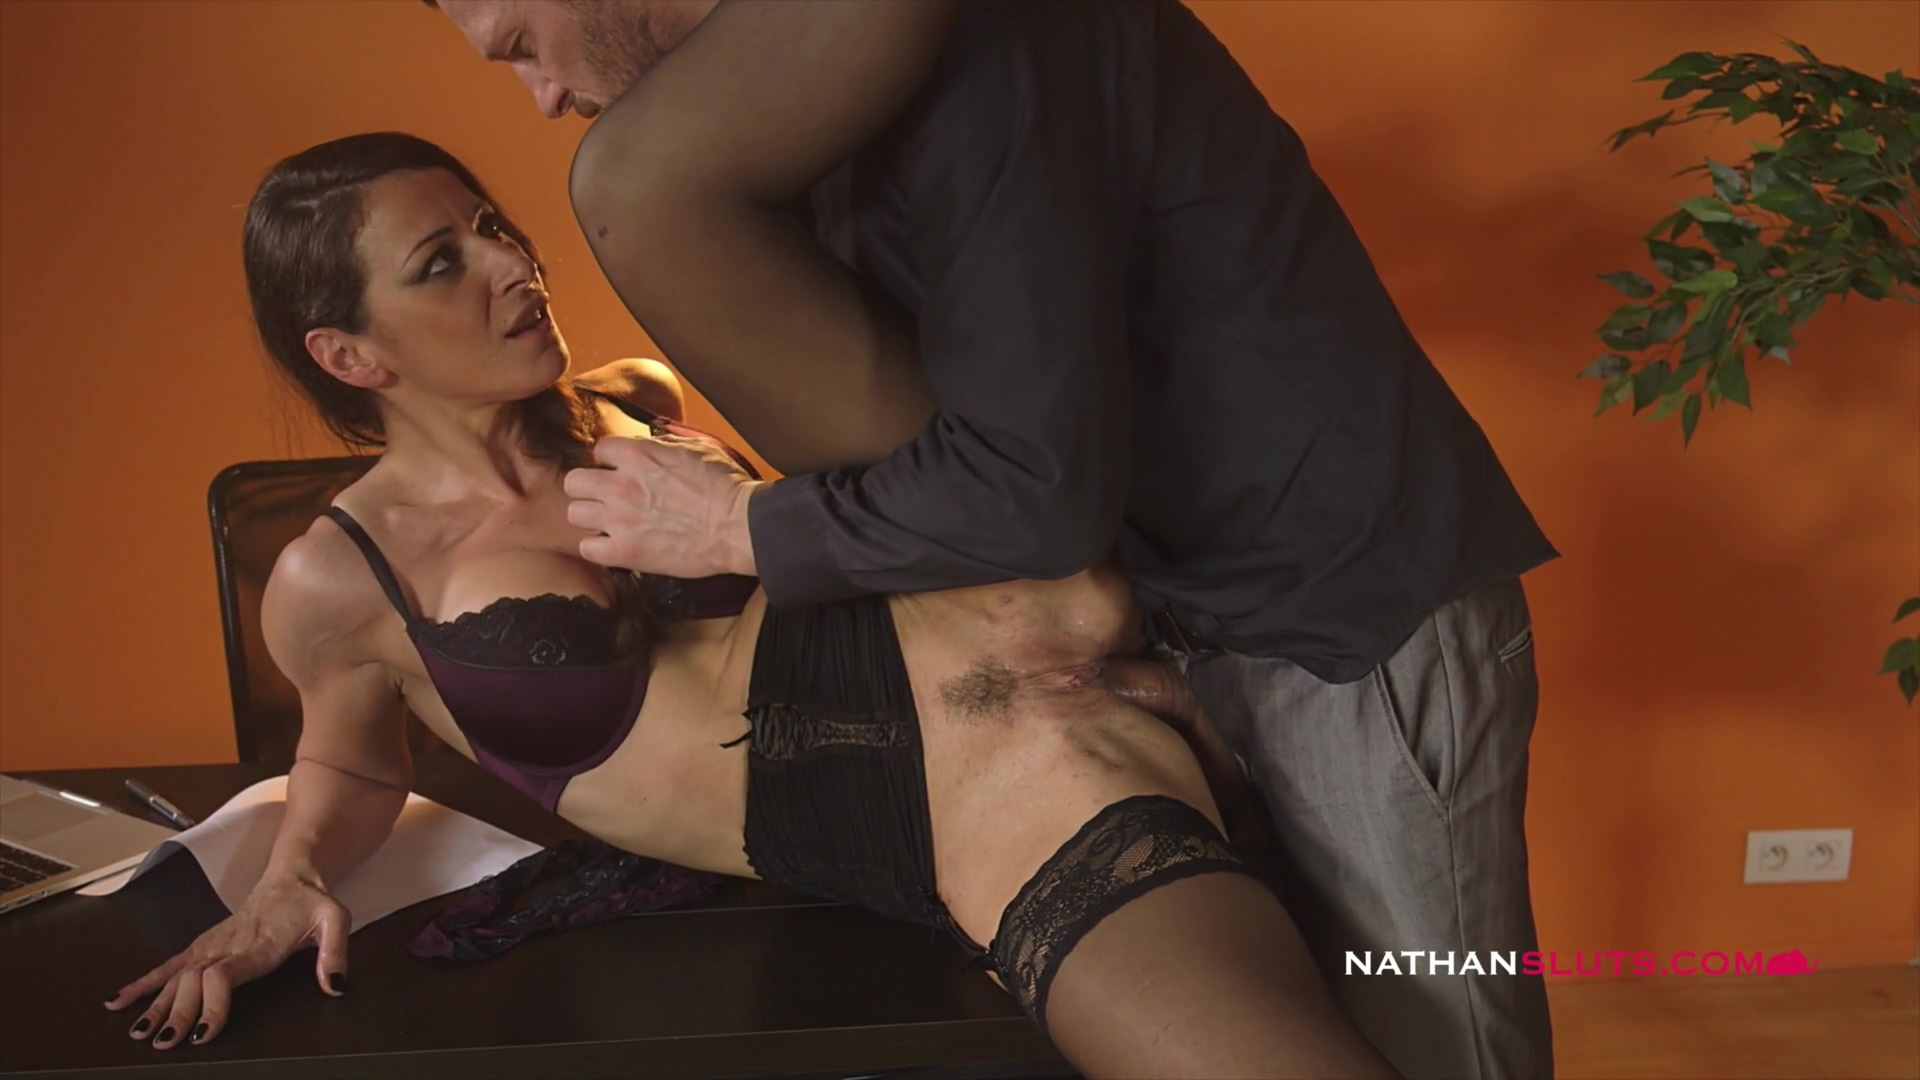 Hot Busty Milf Secretary Martina Gold Takes On Her Boss Big Dick Up Her Gaping Asshole